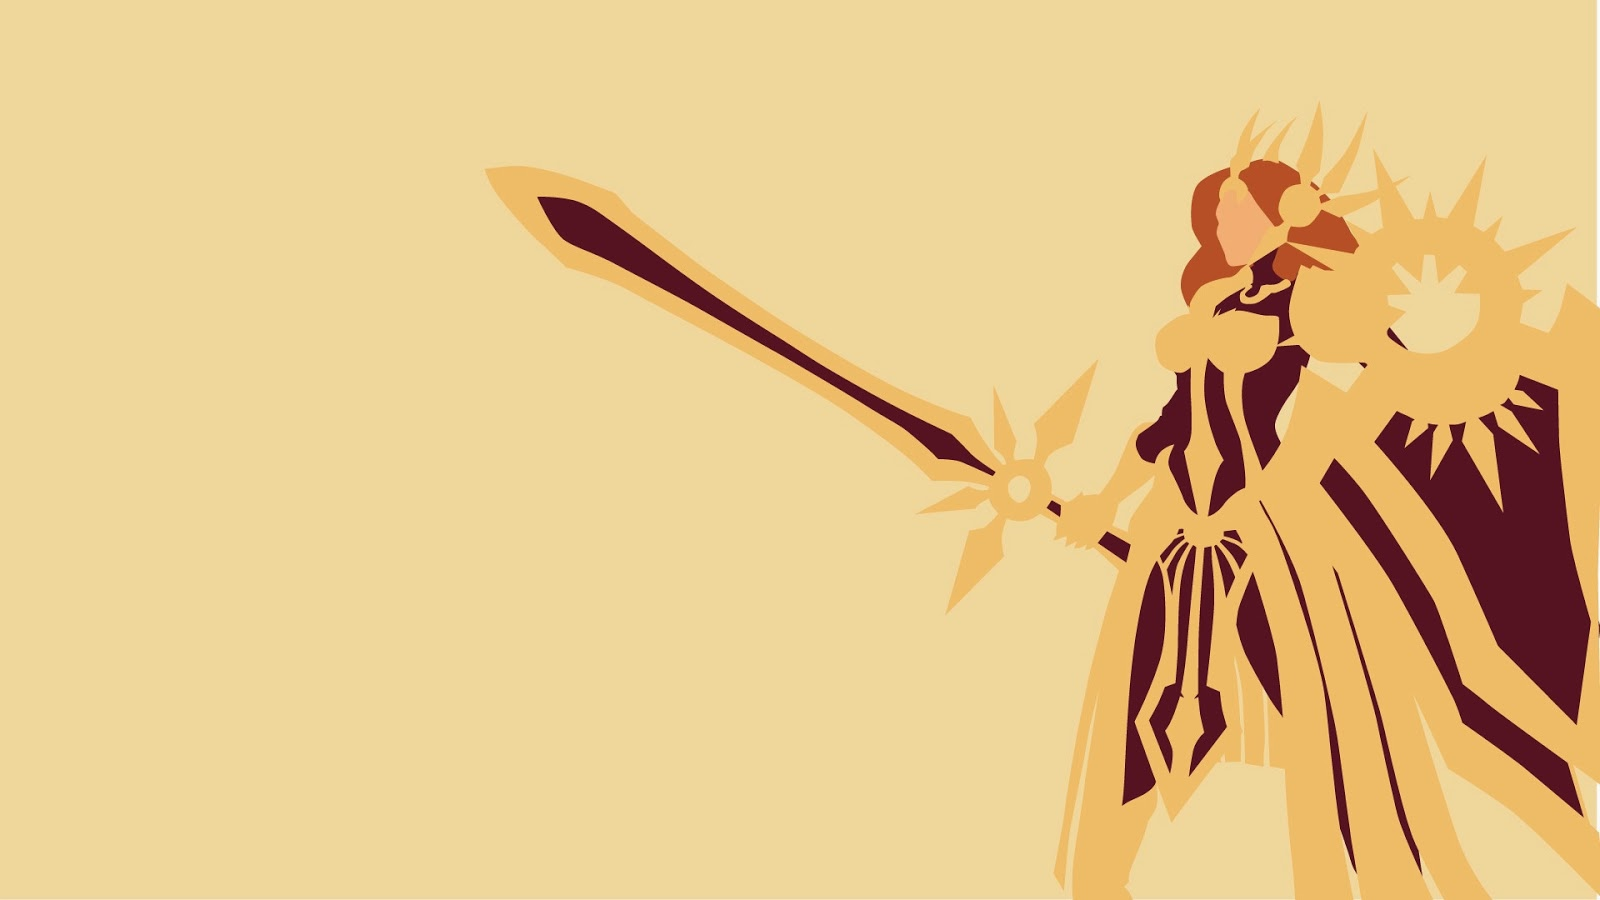 Leona League Of Legends Wallpaper Leona Desktop Wallpaper